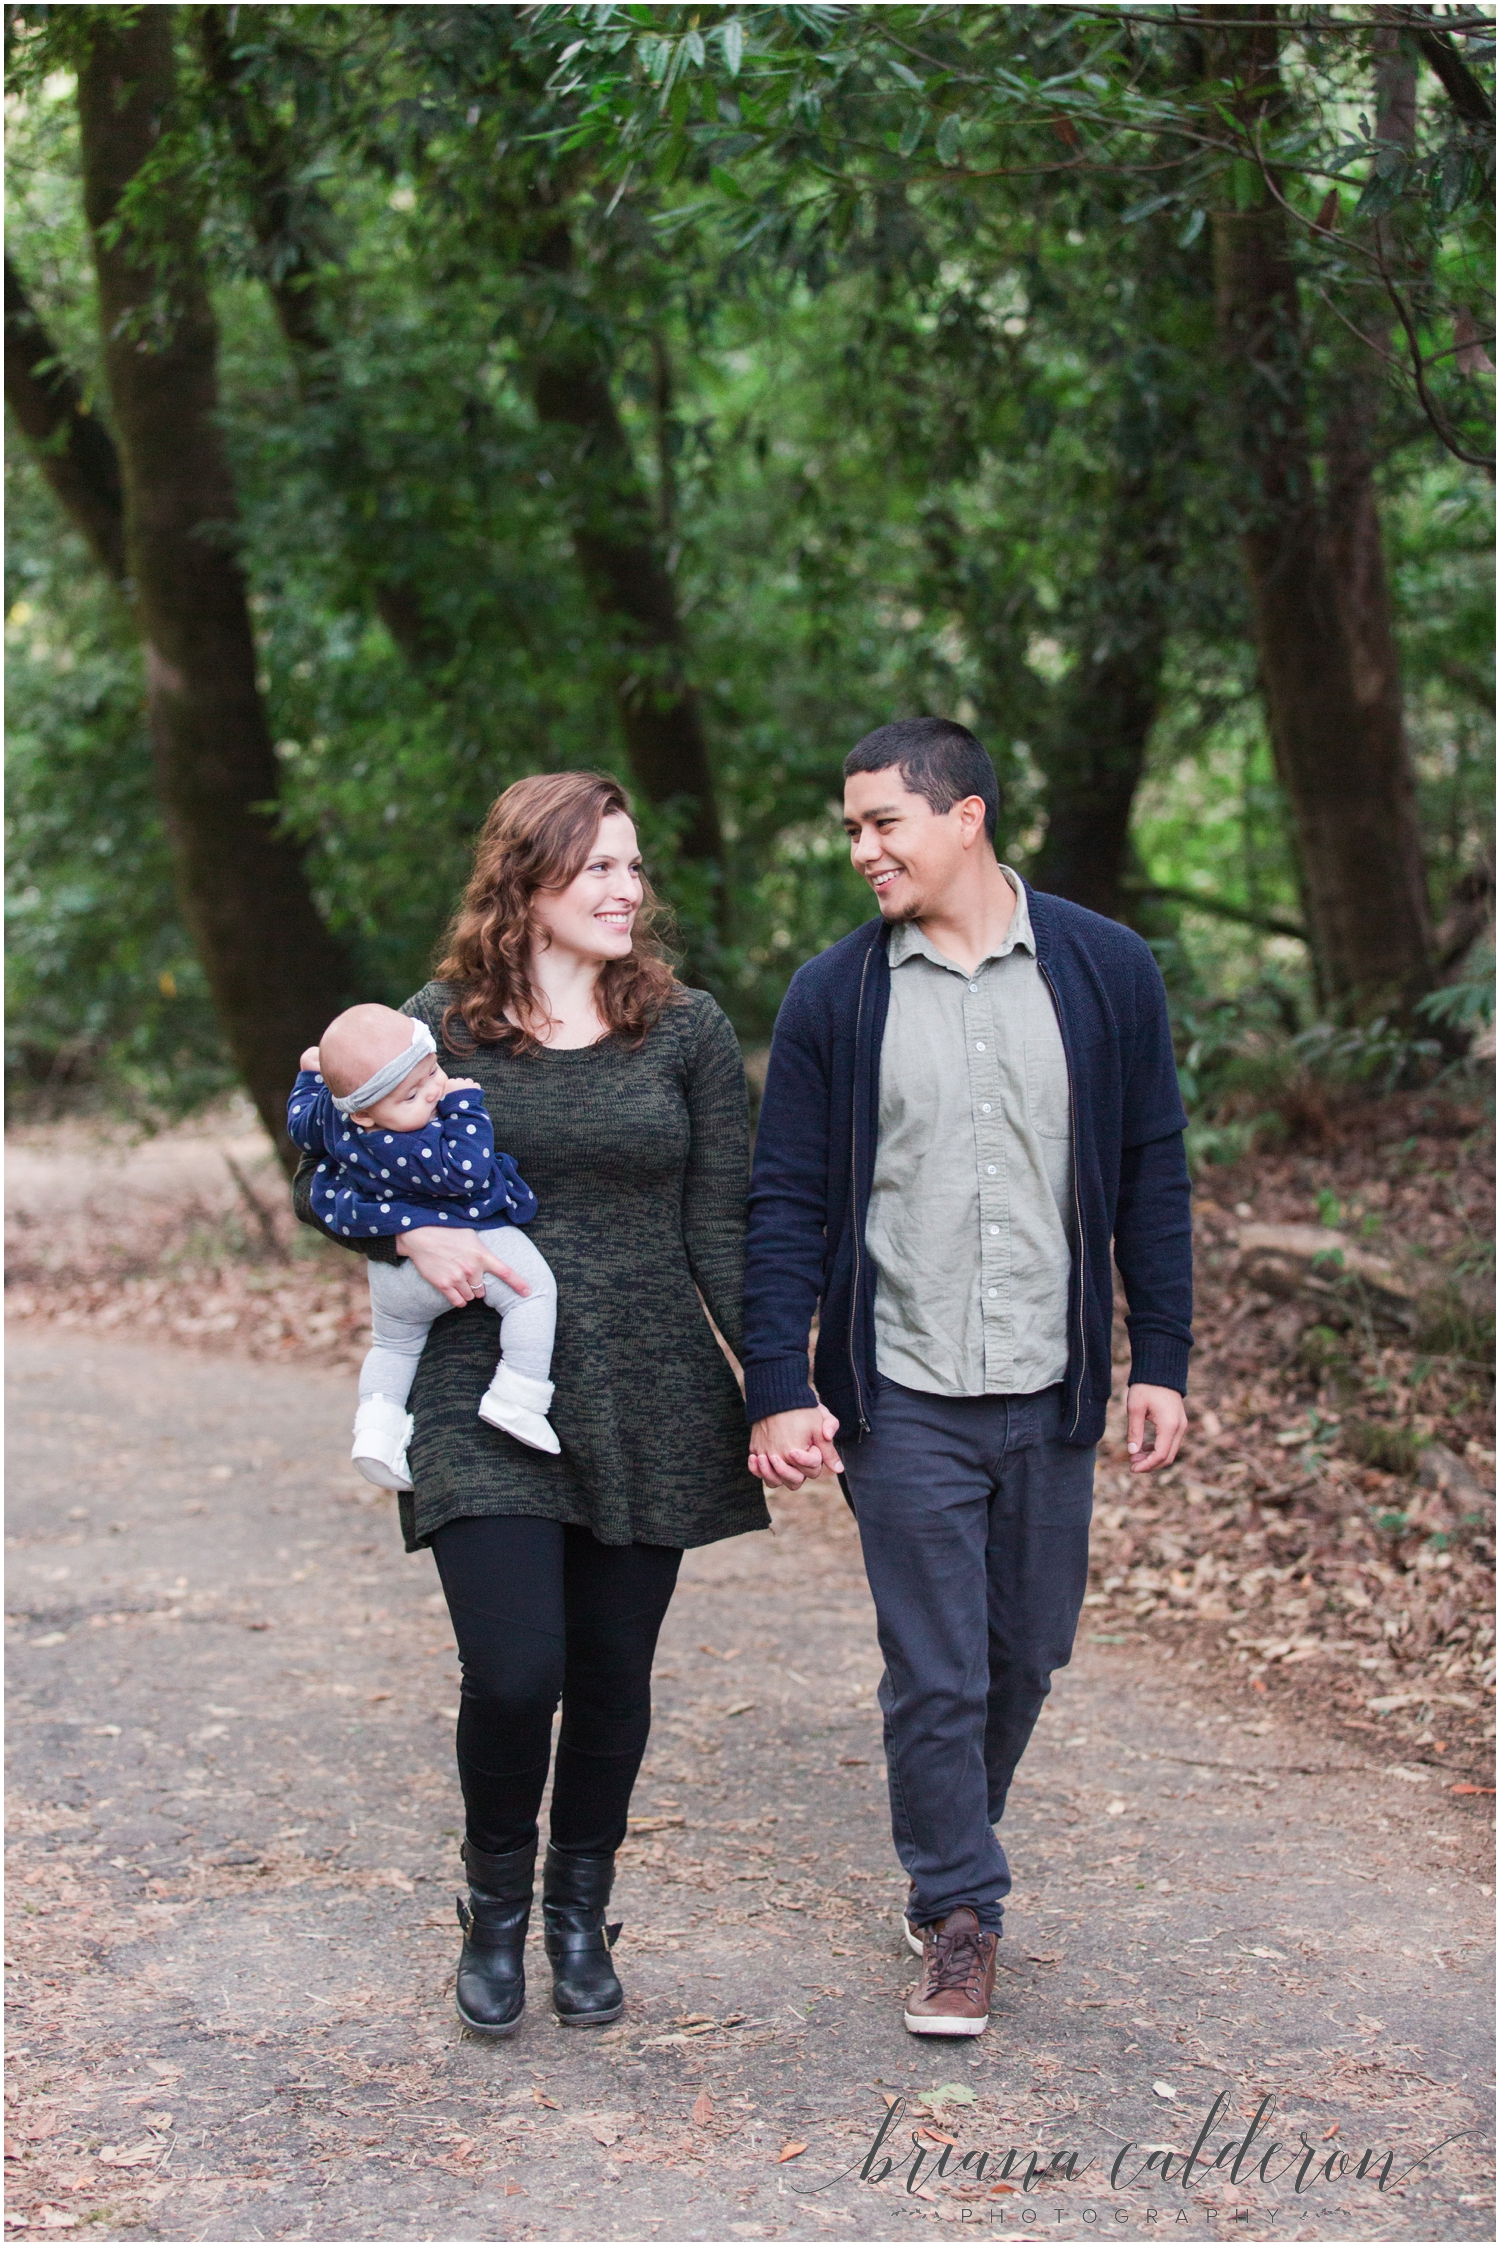 Engagement pictures at Henry Cowell Redwoods in Felton, CA by Briana Calderon Photography_1347.jpg